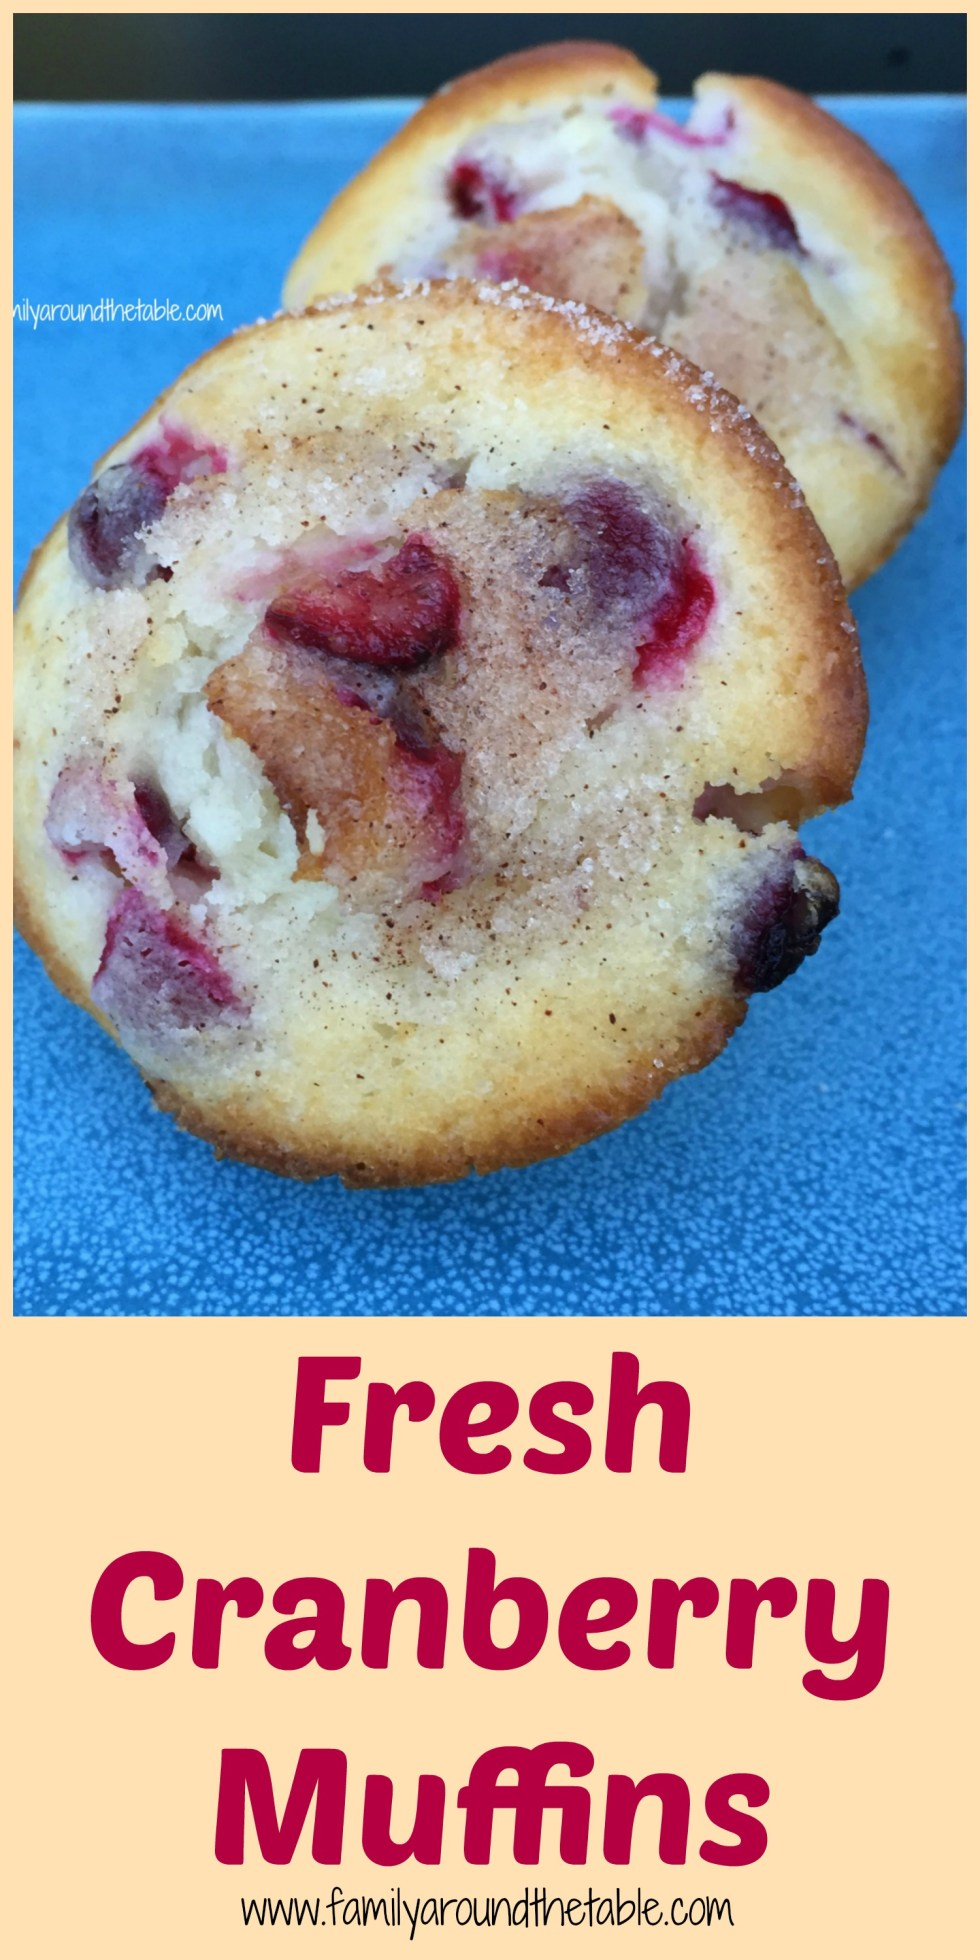 Fresh cranberry muffins will delight family and friends for breakfast.